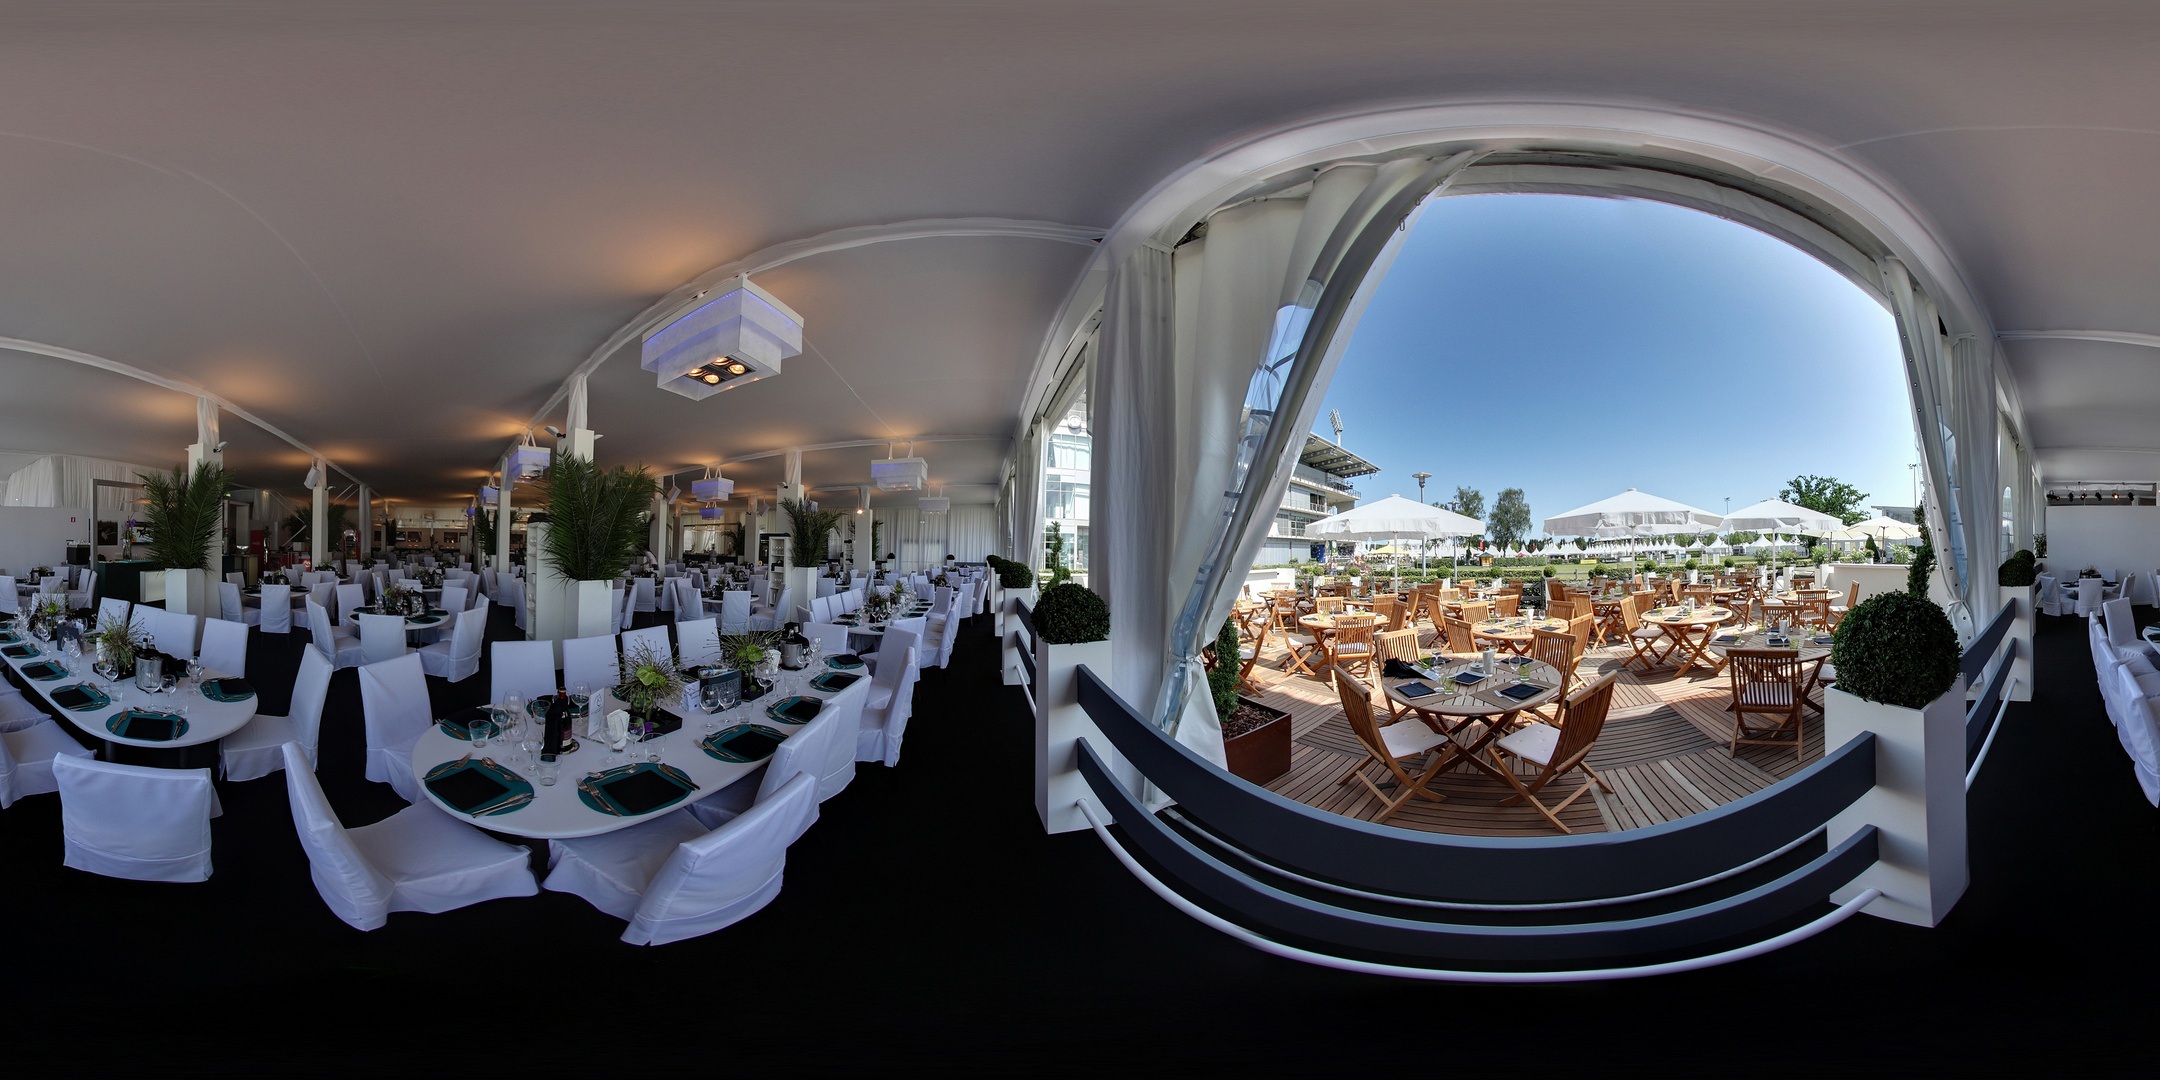 CHIO Aachen by Marko Ginster location360.de